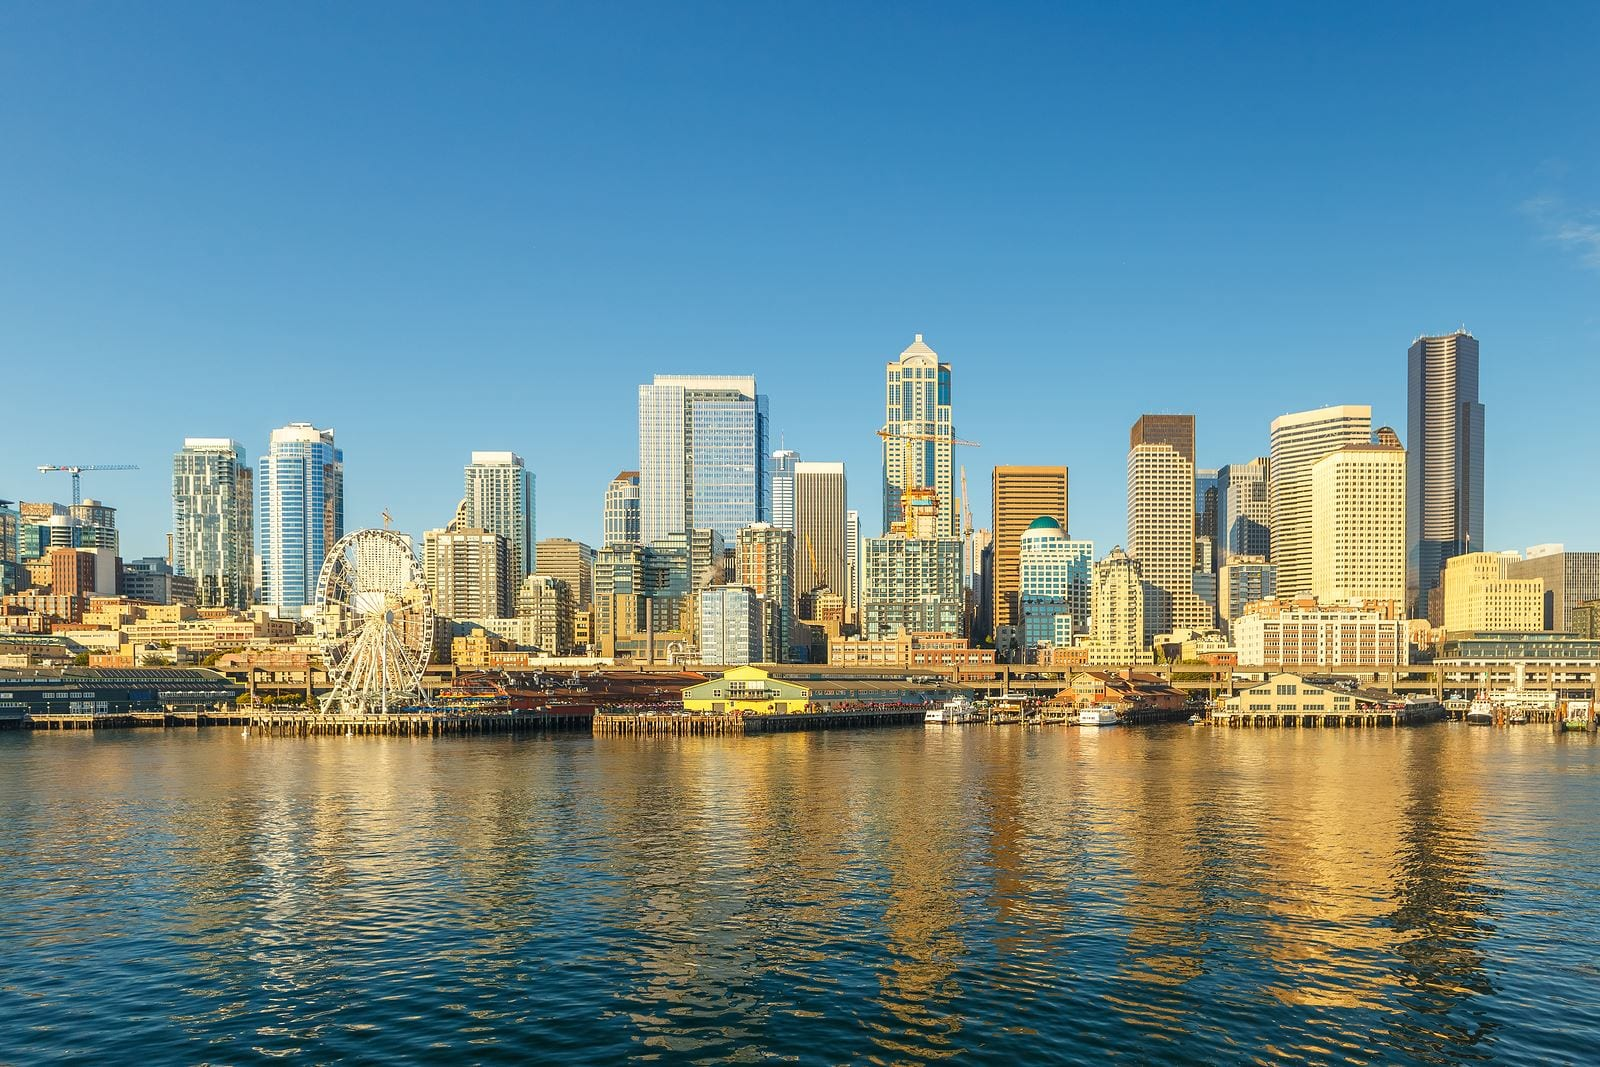 2019 Seattle Housing Market: Still a Good Choice for Investment